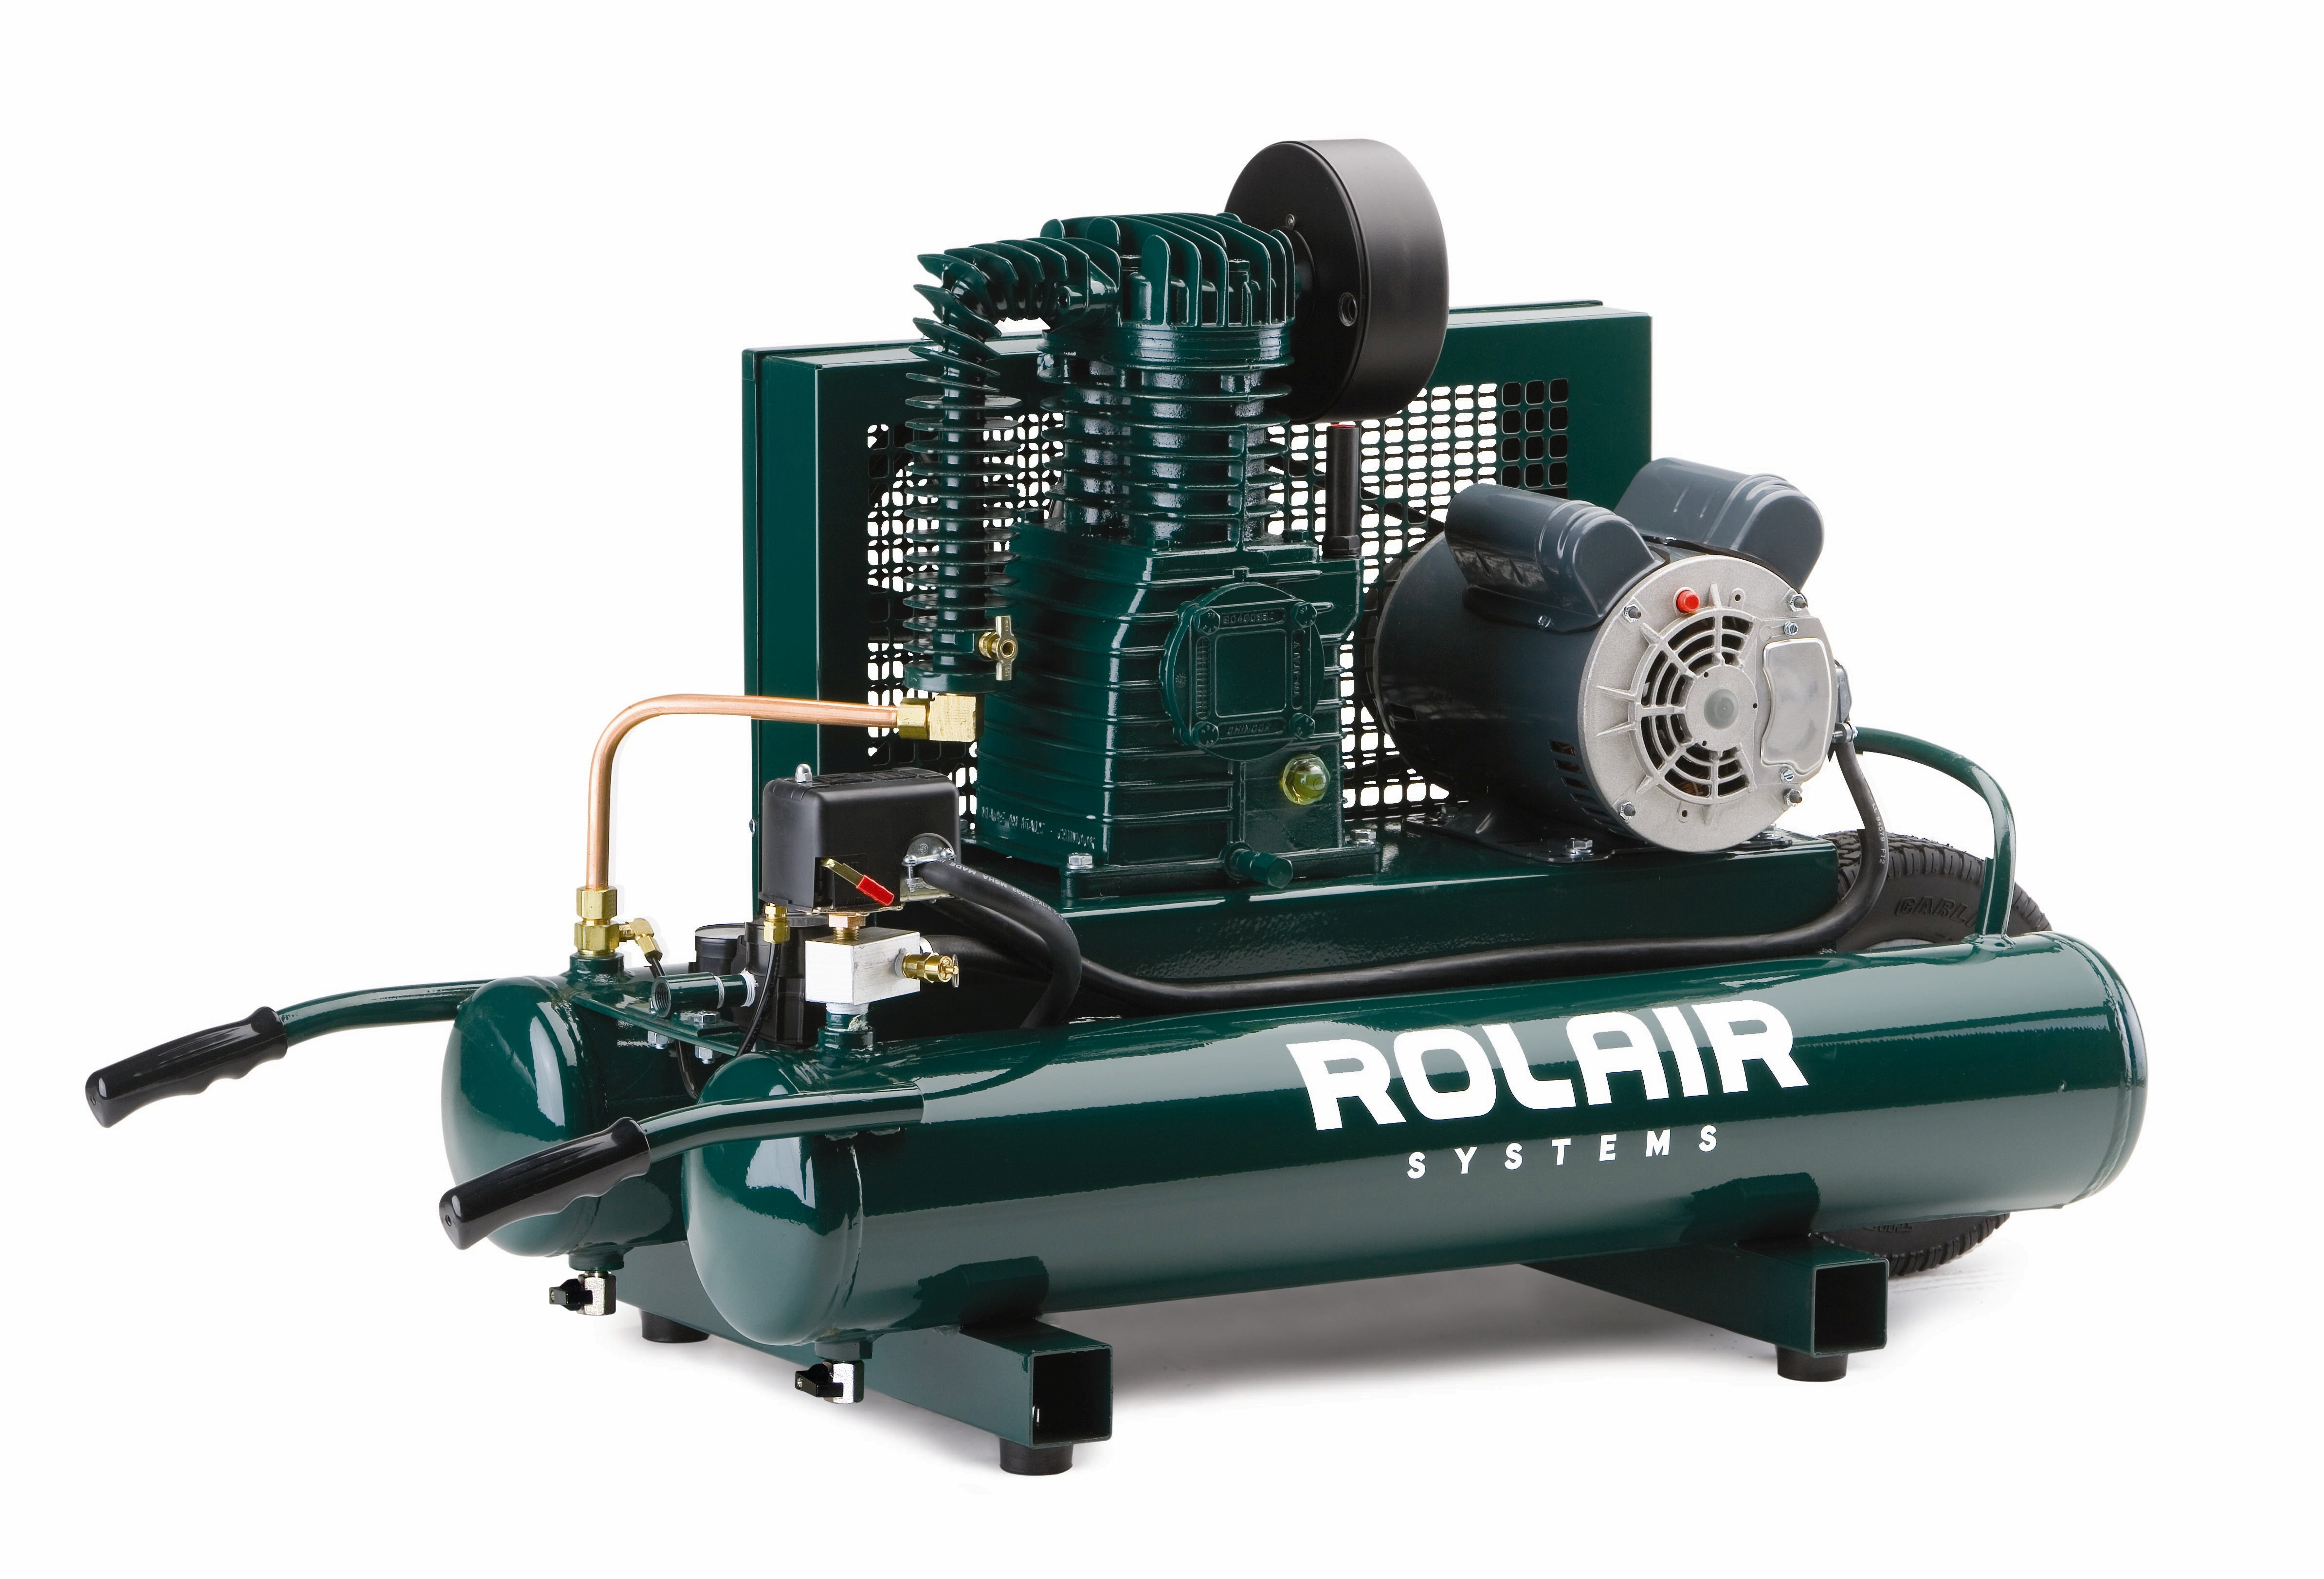 Rolair Systems Air Compressors Compressor Pumps Accessories Wiring Schematic For 2 Wheeled Electric